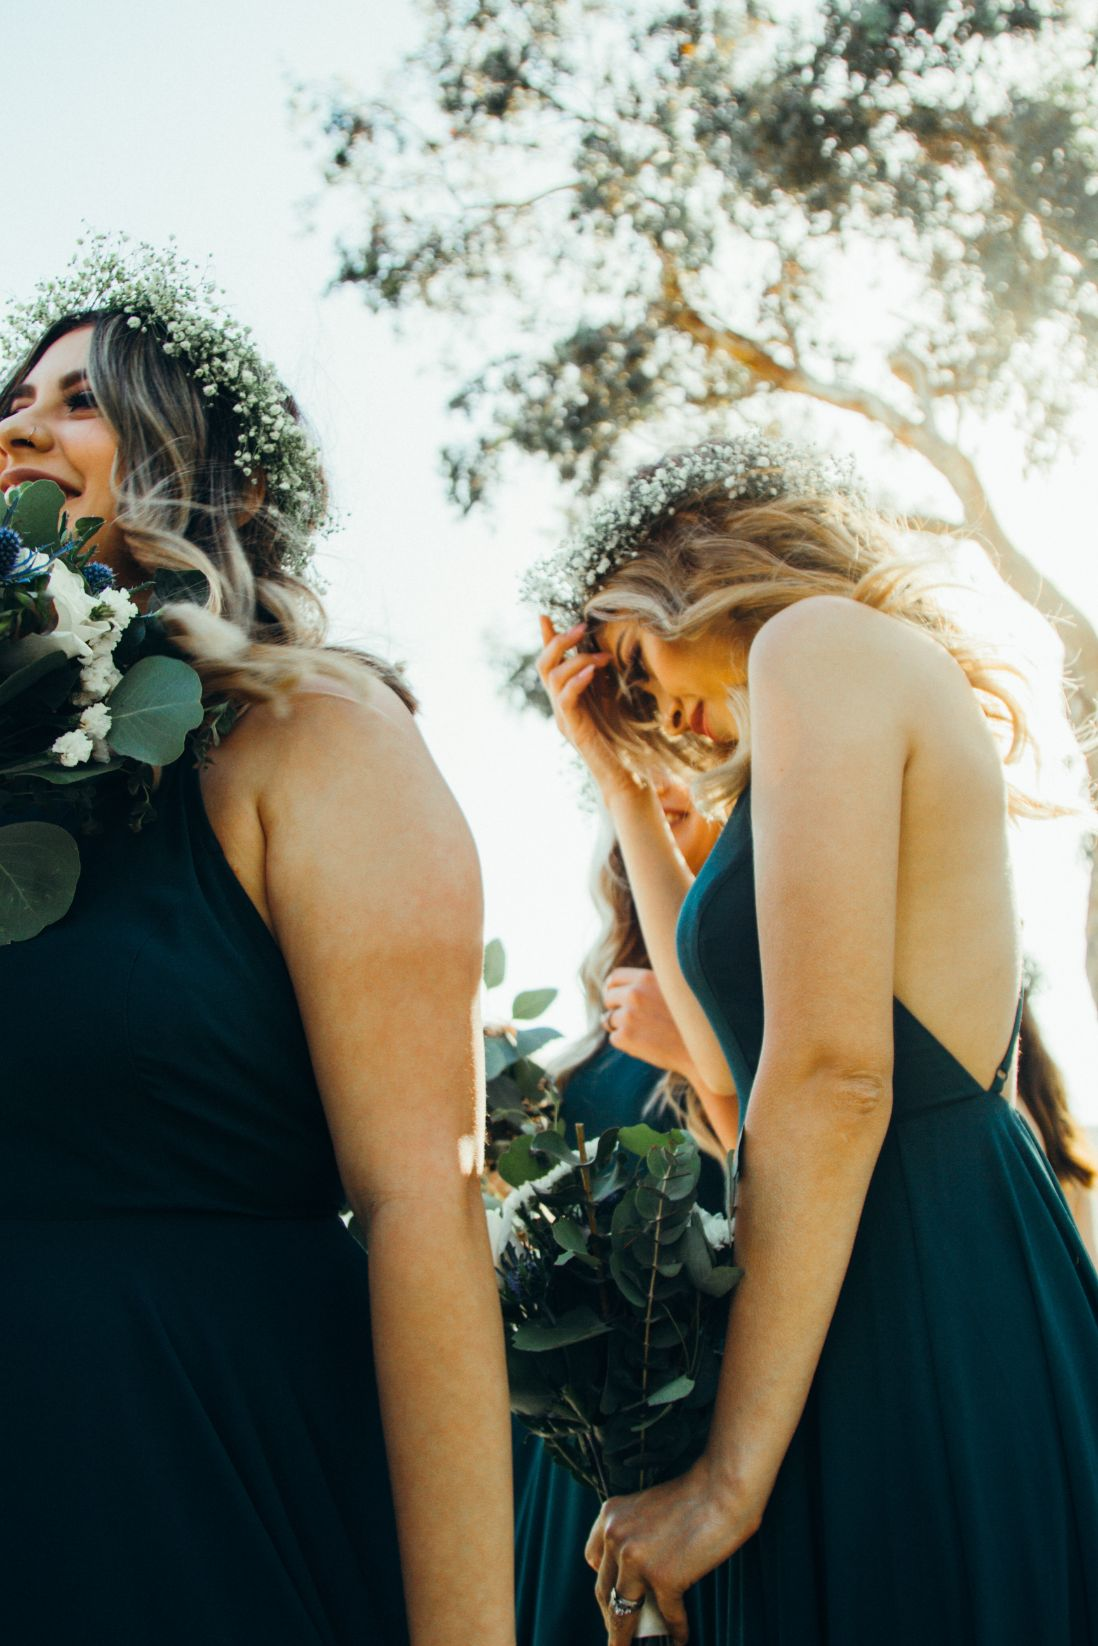 1 7 Ways Your Wedding Can End Friendships